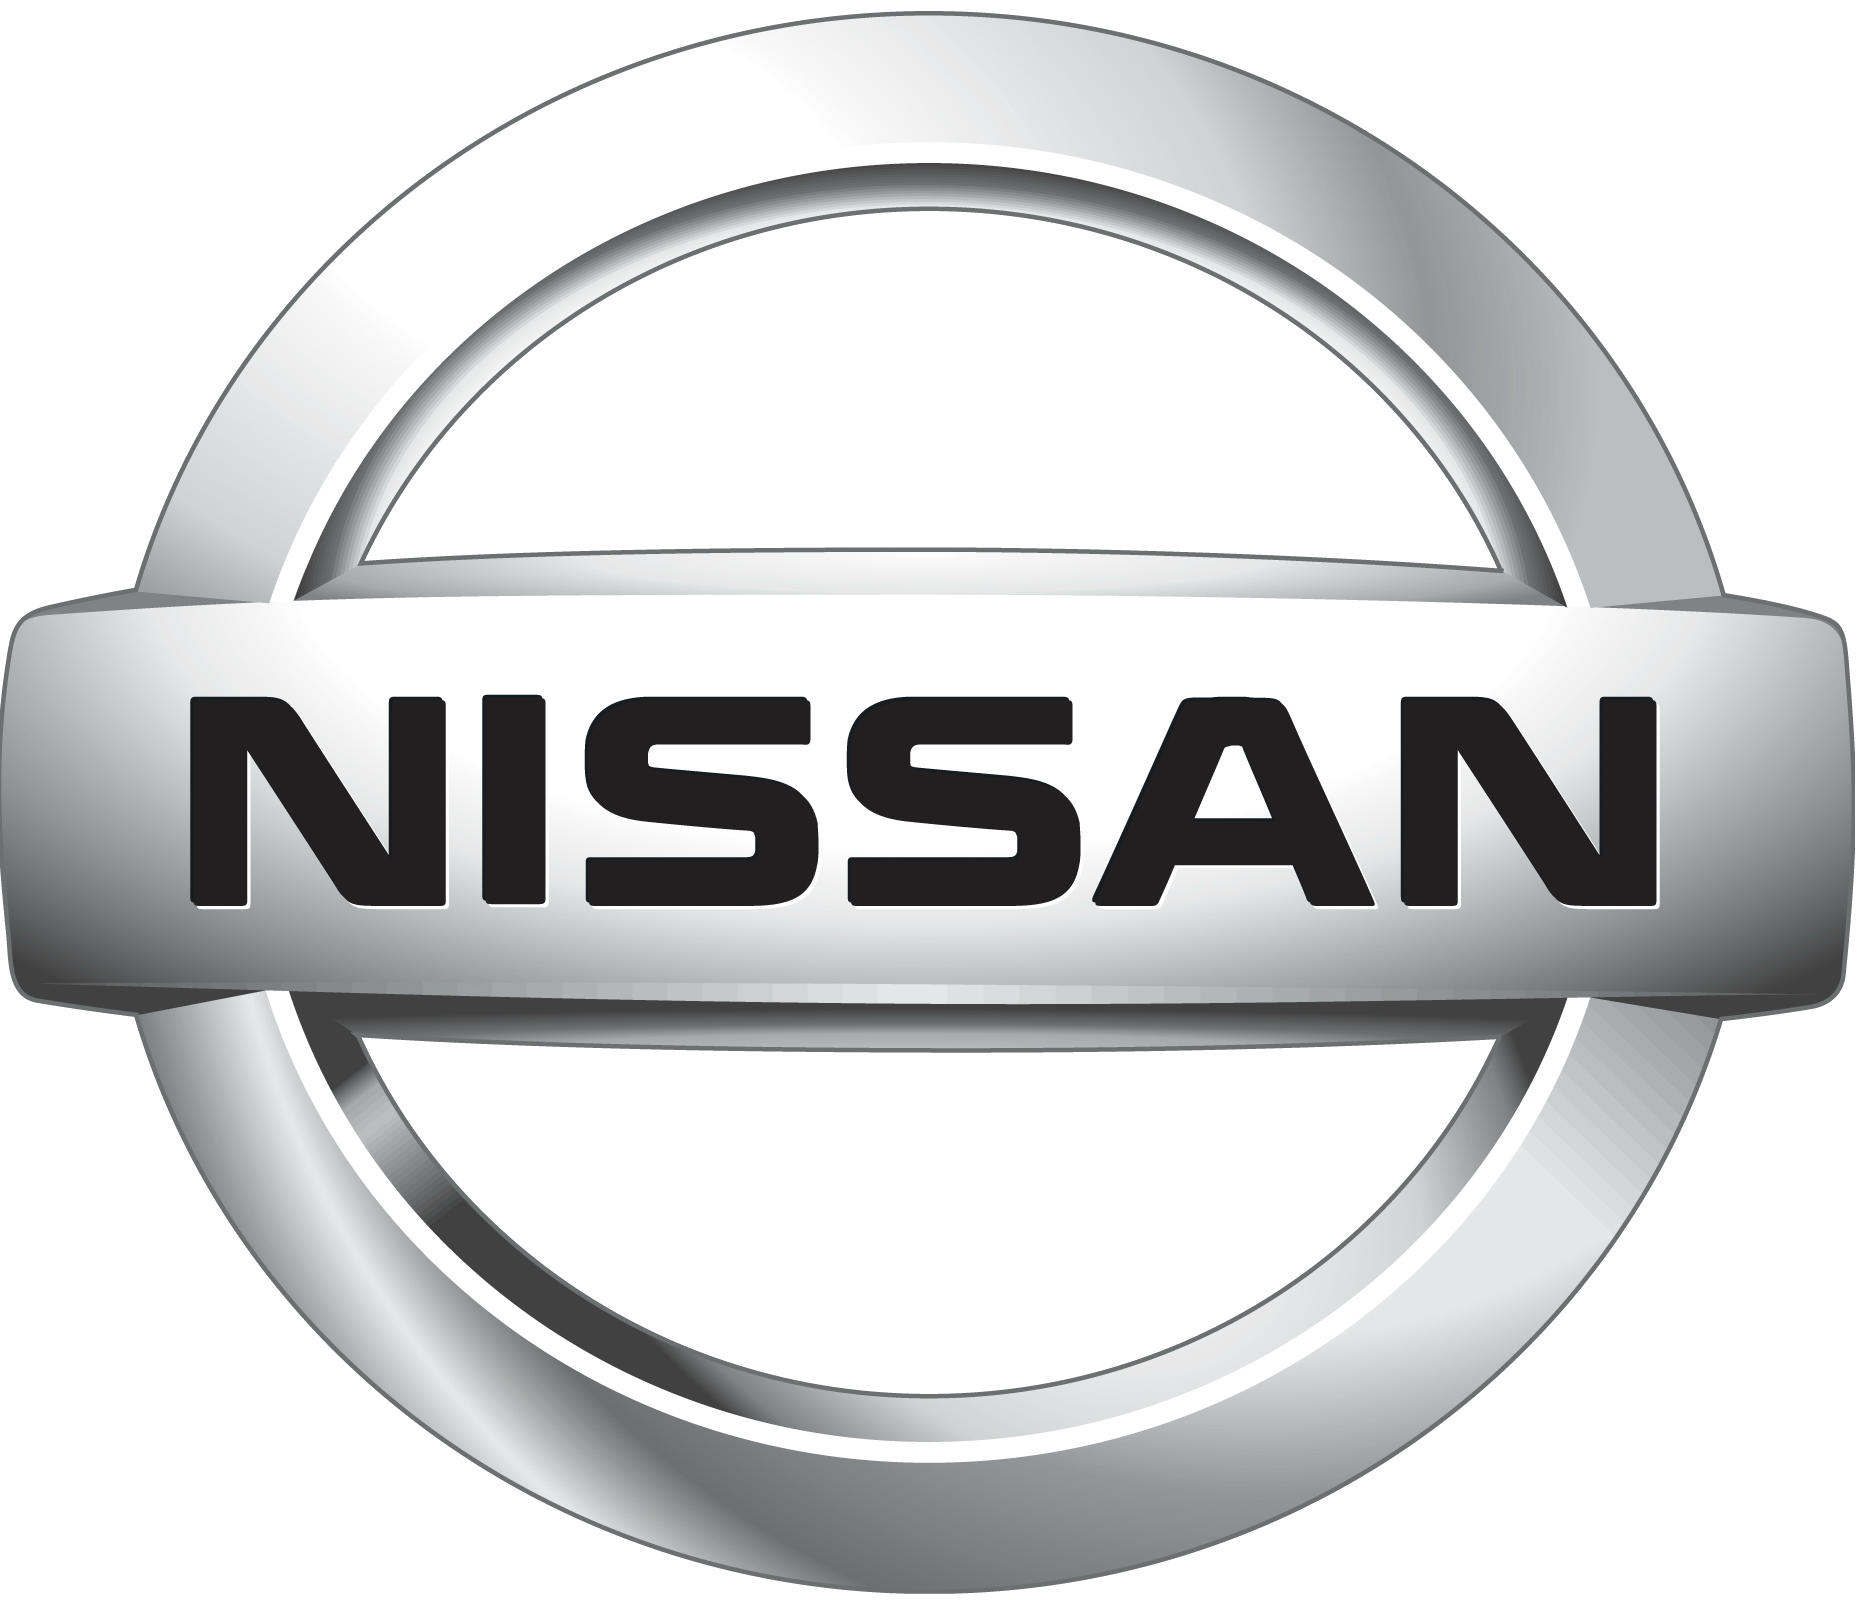 Used Nissan Vehicles for sale in Laval, QC - AutoZoom